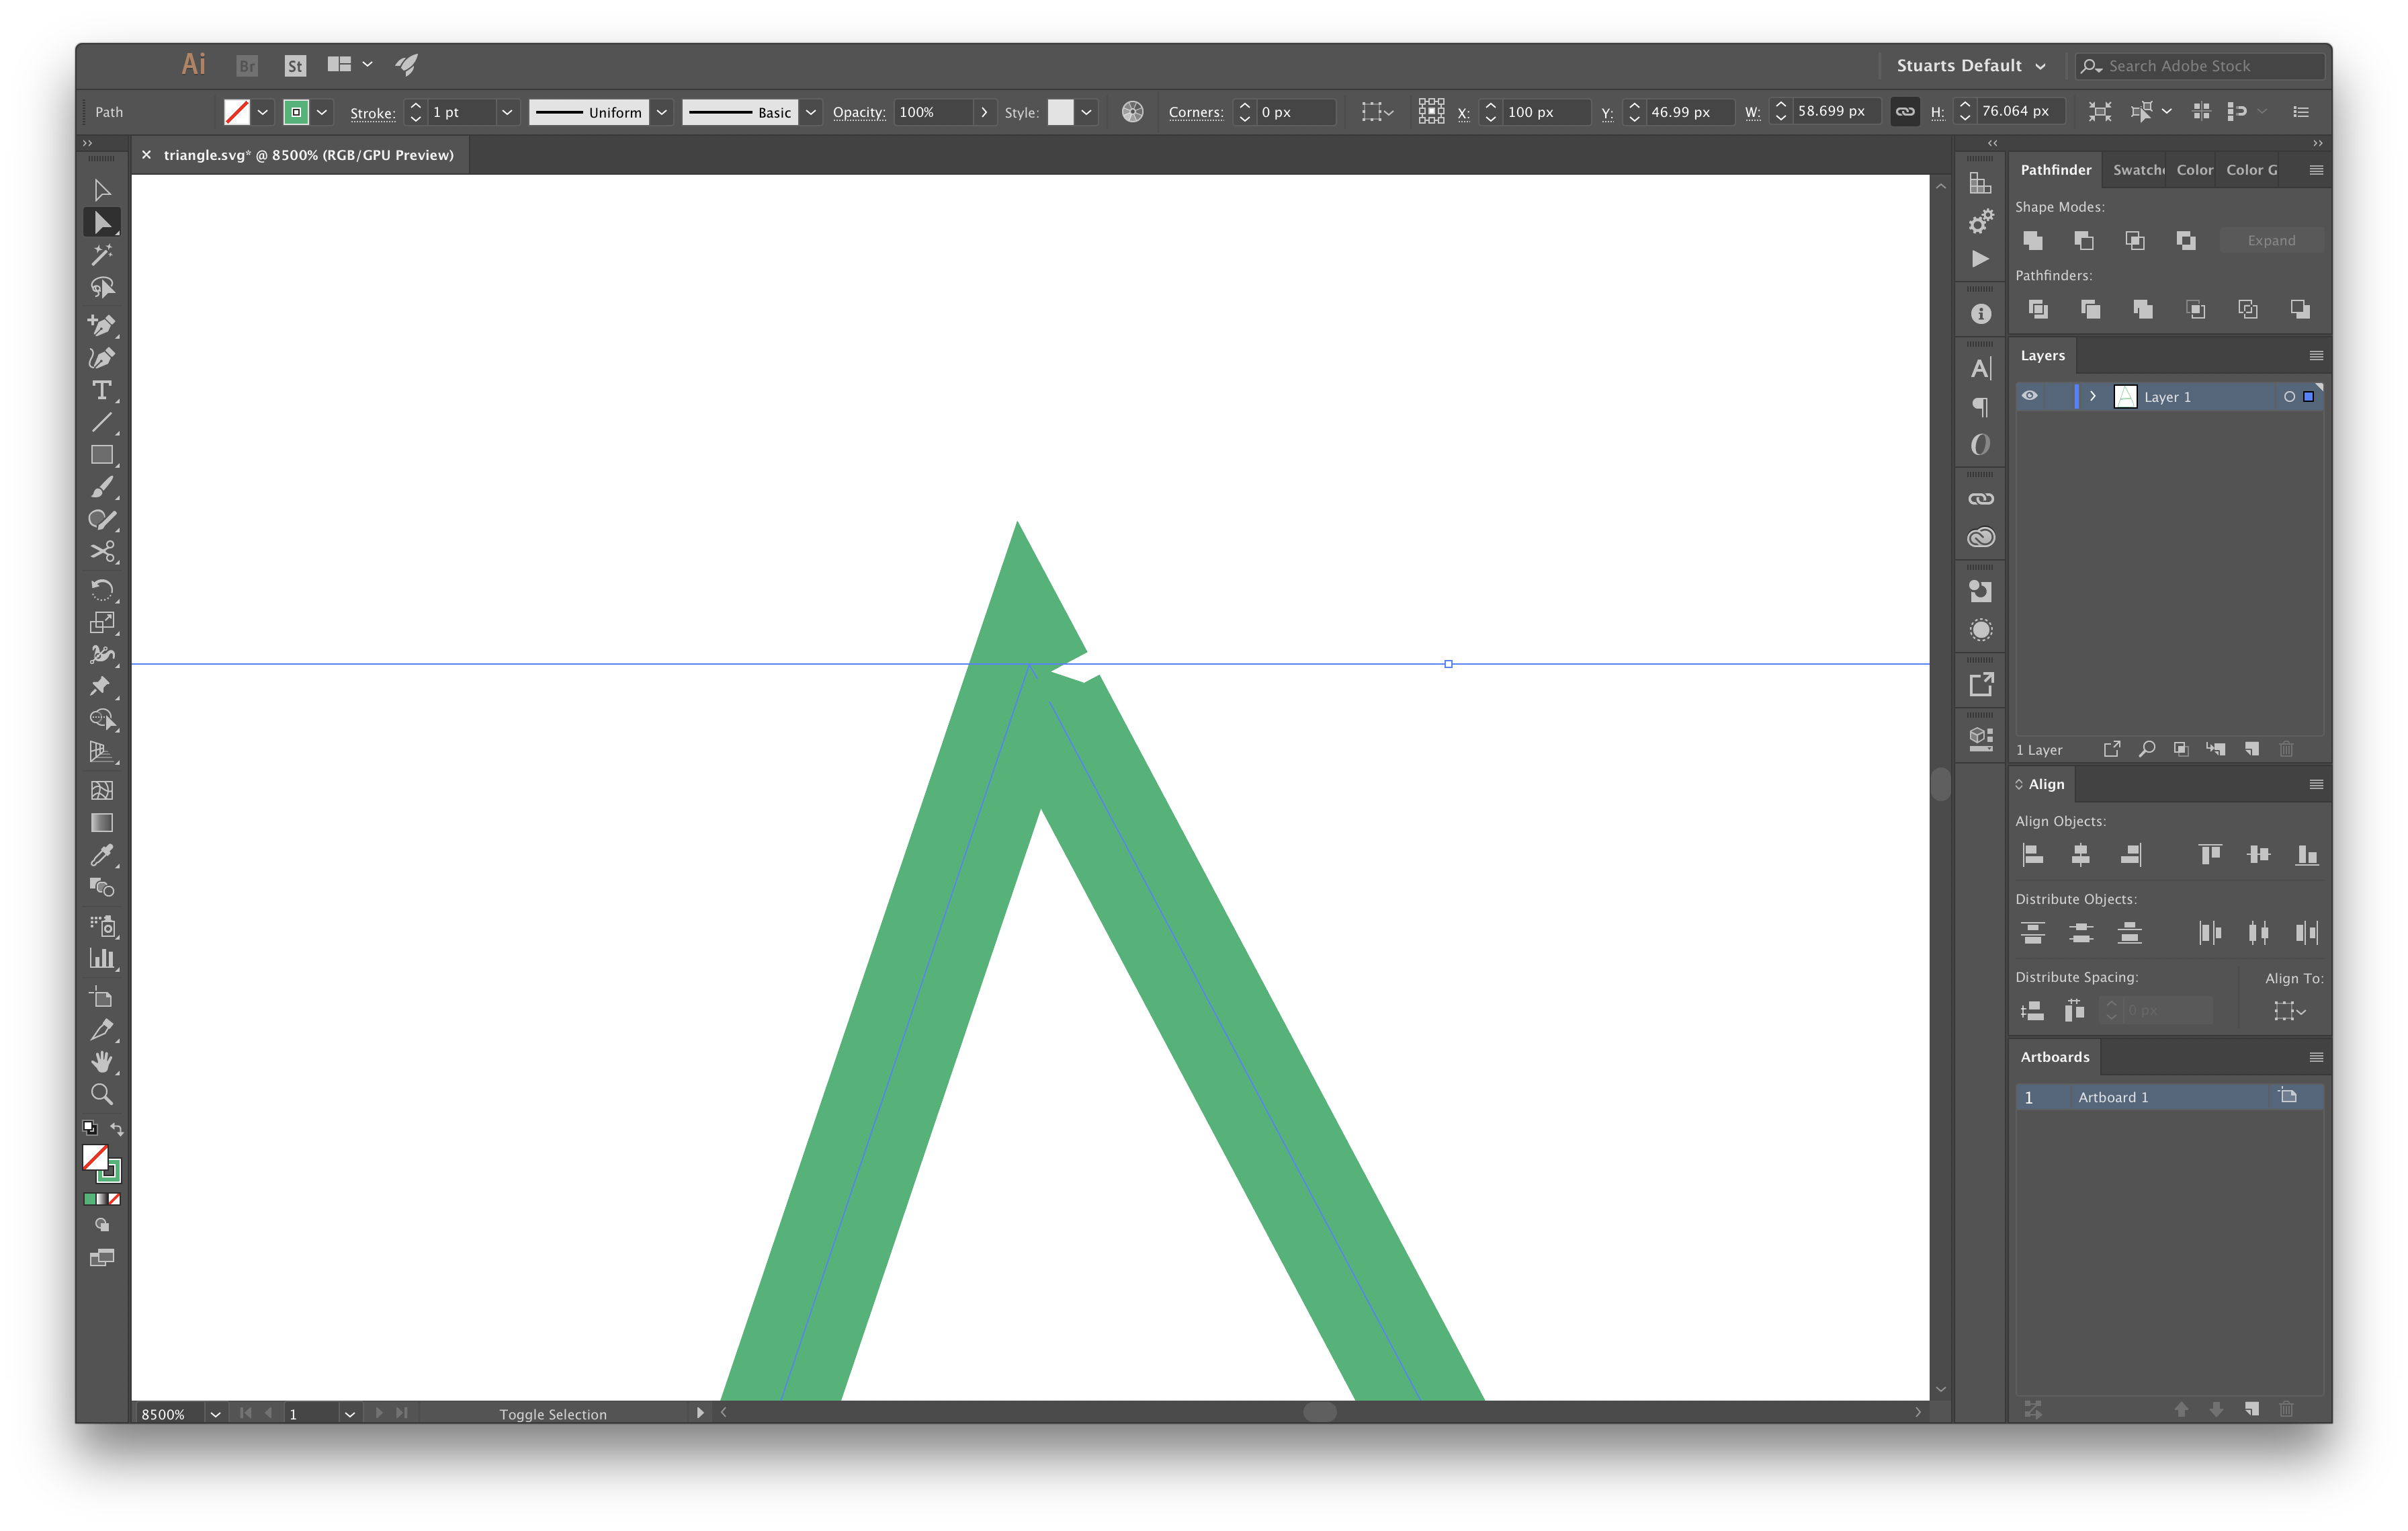 How to move starting point of a SVG line drawing animation